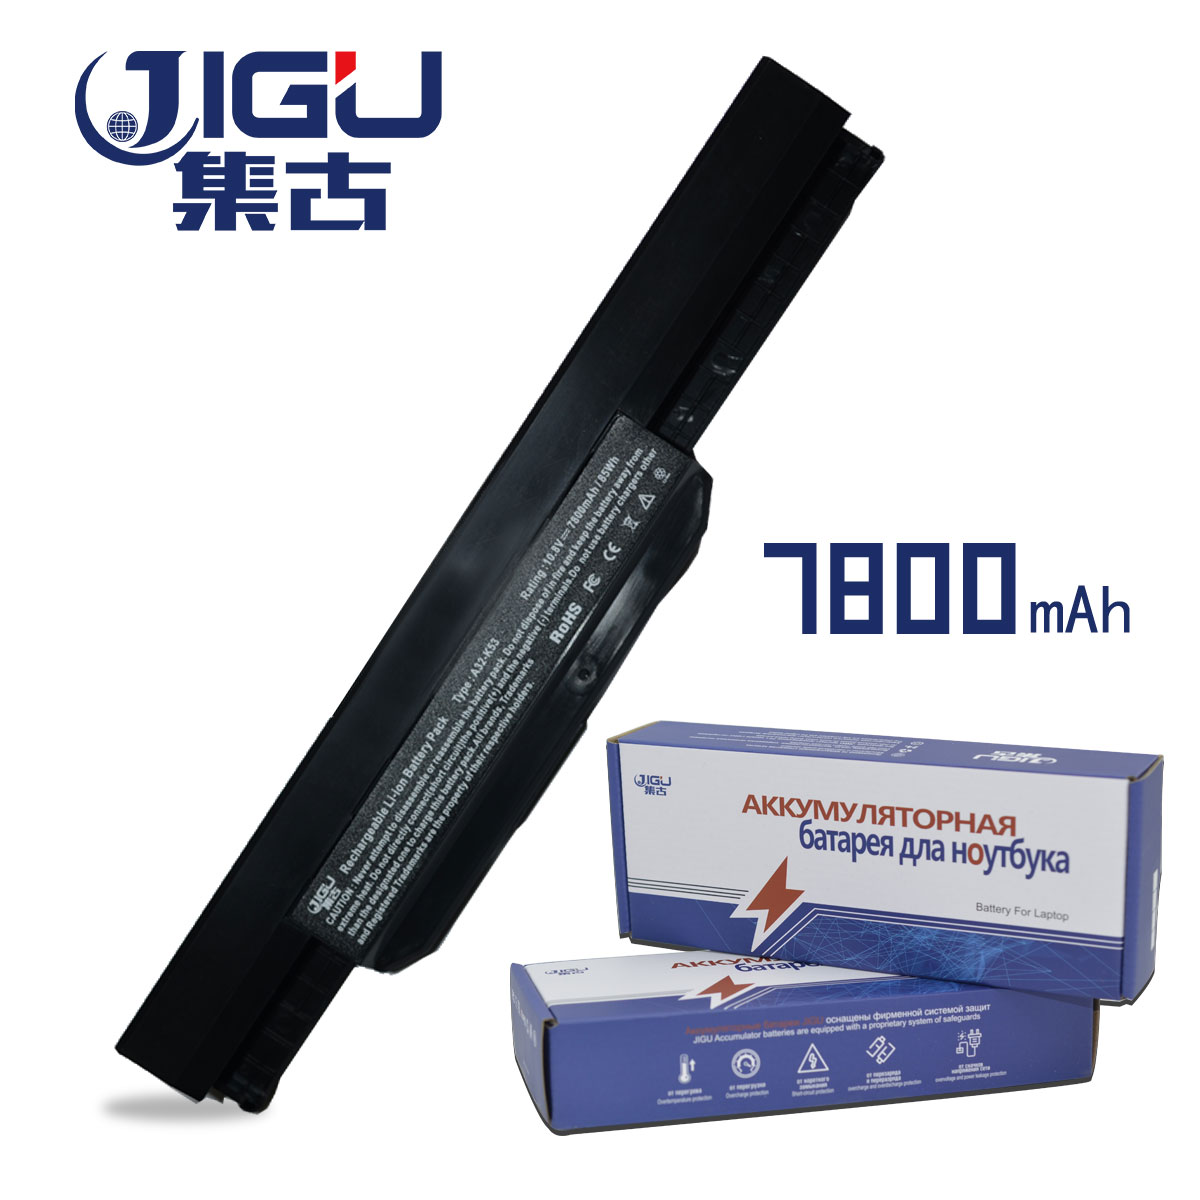 JIGU Replacement Laptop Battery For ASUS K53 K53B K53BR K53BY K53E K53S K53SC K53T K53TA K53TK K53U K53Z 9Cell 7800mah laptop battery for asus k53 k53b k53by k53e k53f k53j k53s k53sd k53sj k53sv k53t k53ta k53u